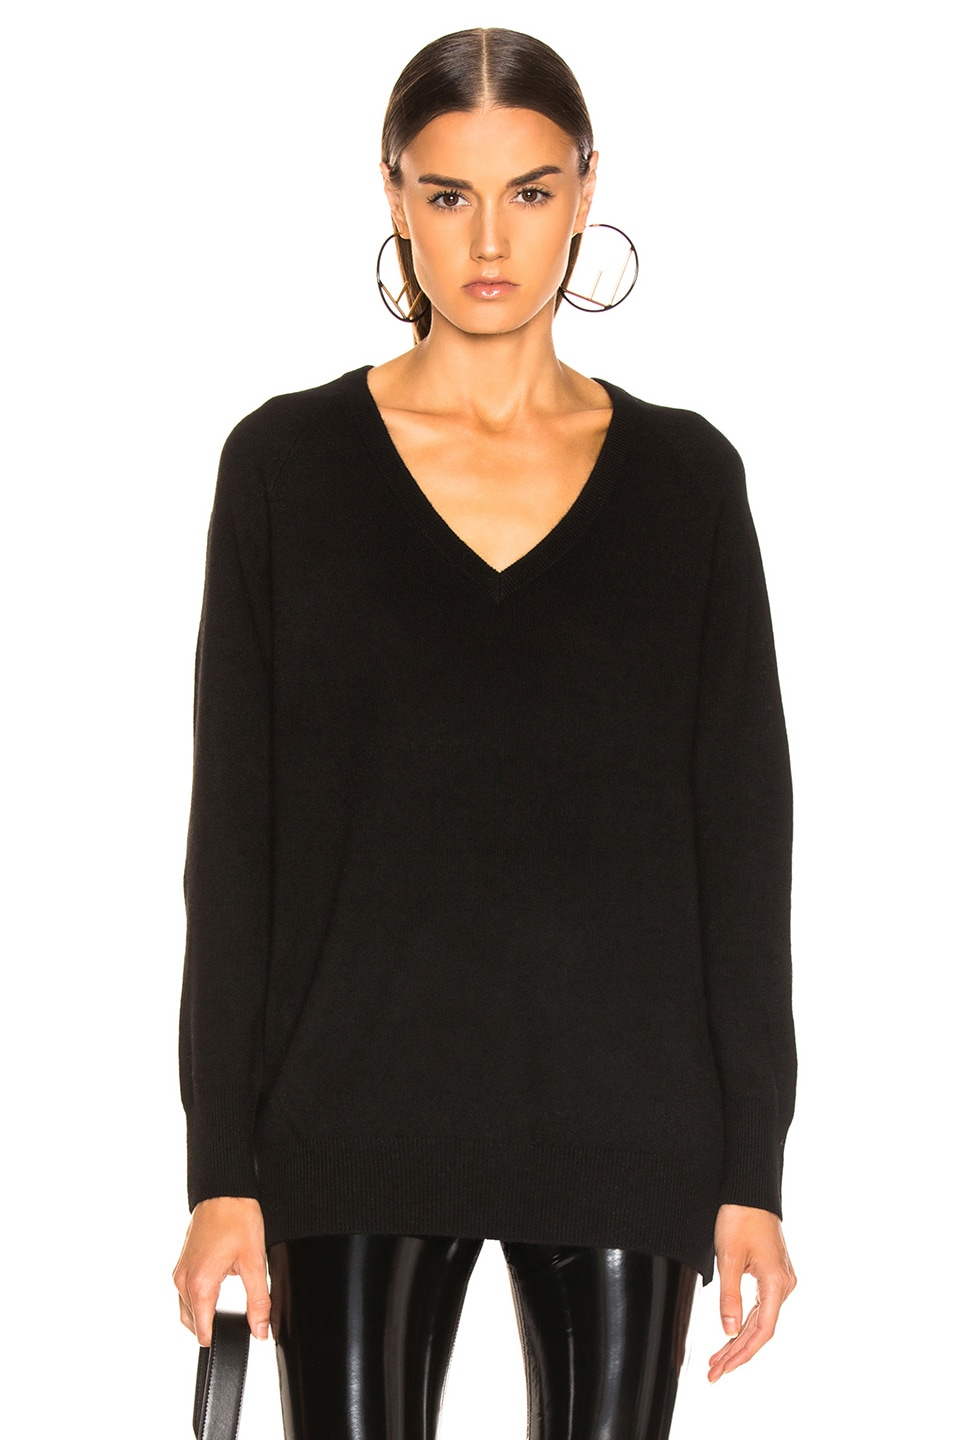 Shop our Collection of Women's V-Neck Sweaters at evildownloadersuper74k.ga for the Latest Designer Brands & Styles. FREE SHIPPING AVAILABLE!